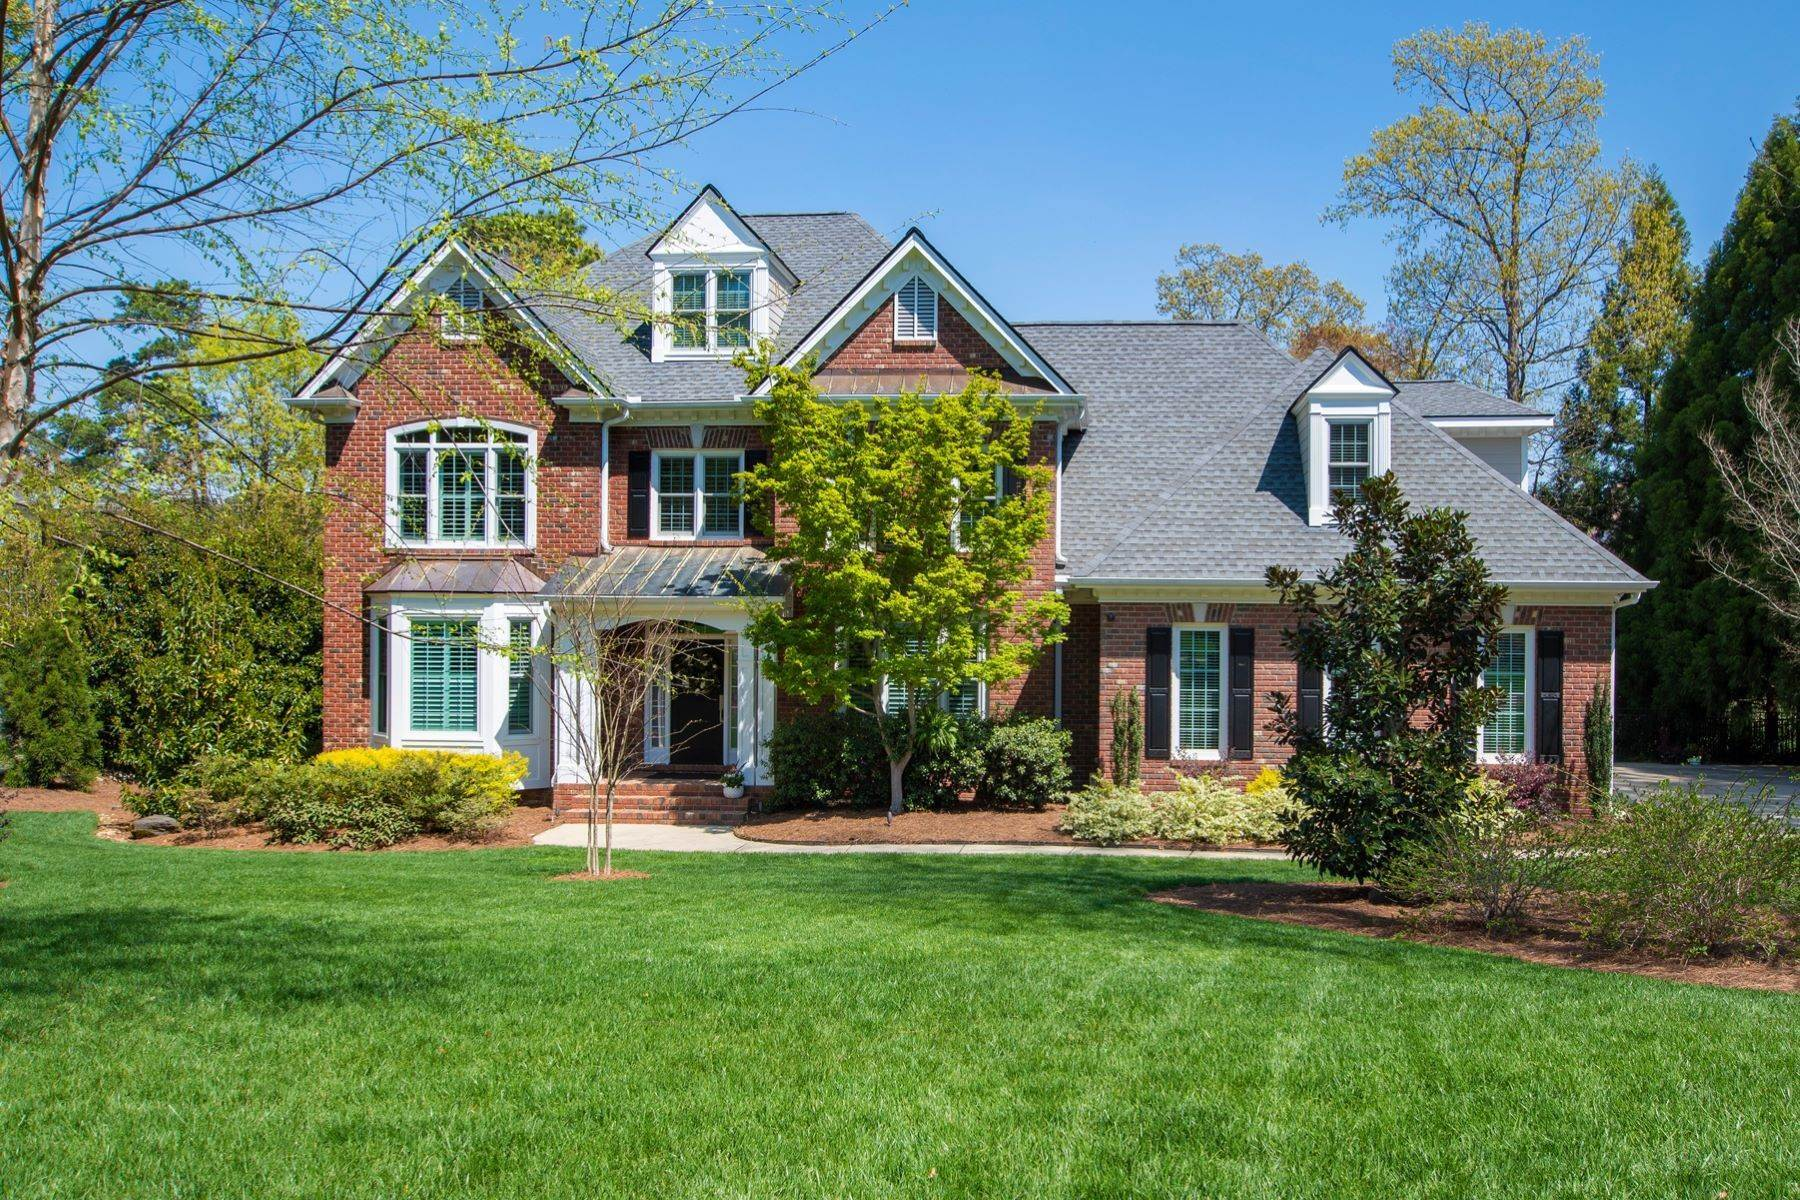 Single Family Homes for Sale at Immaculately remodeled home in North Raleigh 8405 Davishire Drive Raleigh, North Carolina 27615 United States